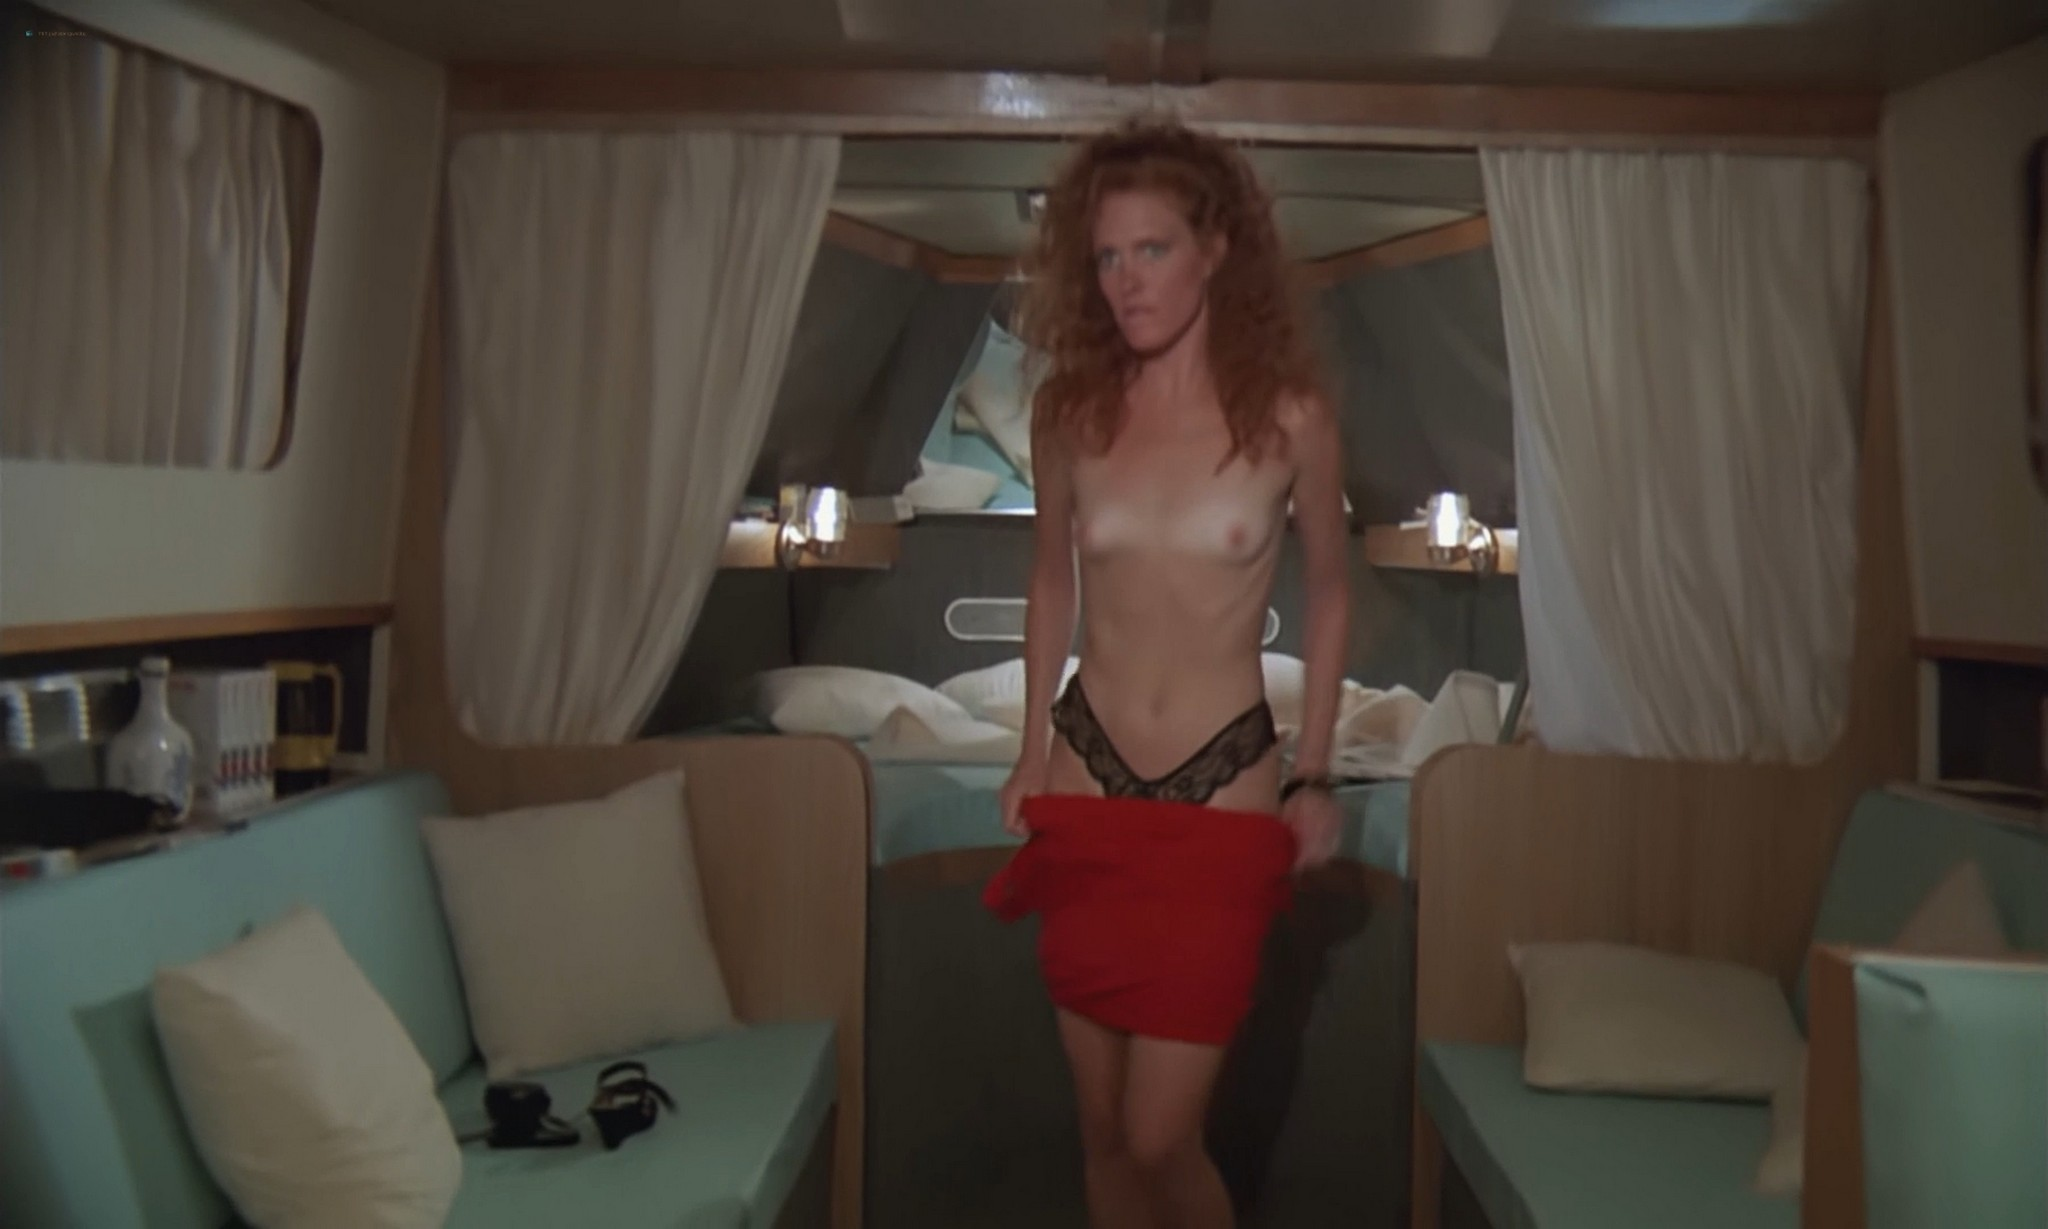 Victoria Prouty nude and sex in the shower American Rickshaw 1989 1080p BluRay 6